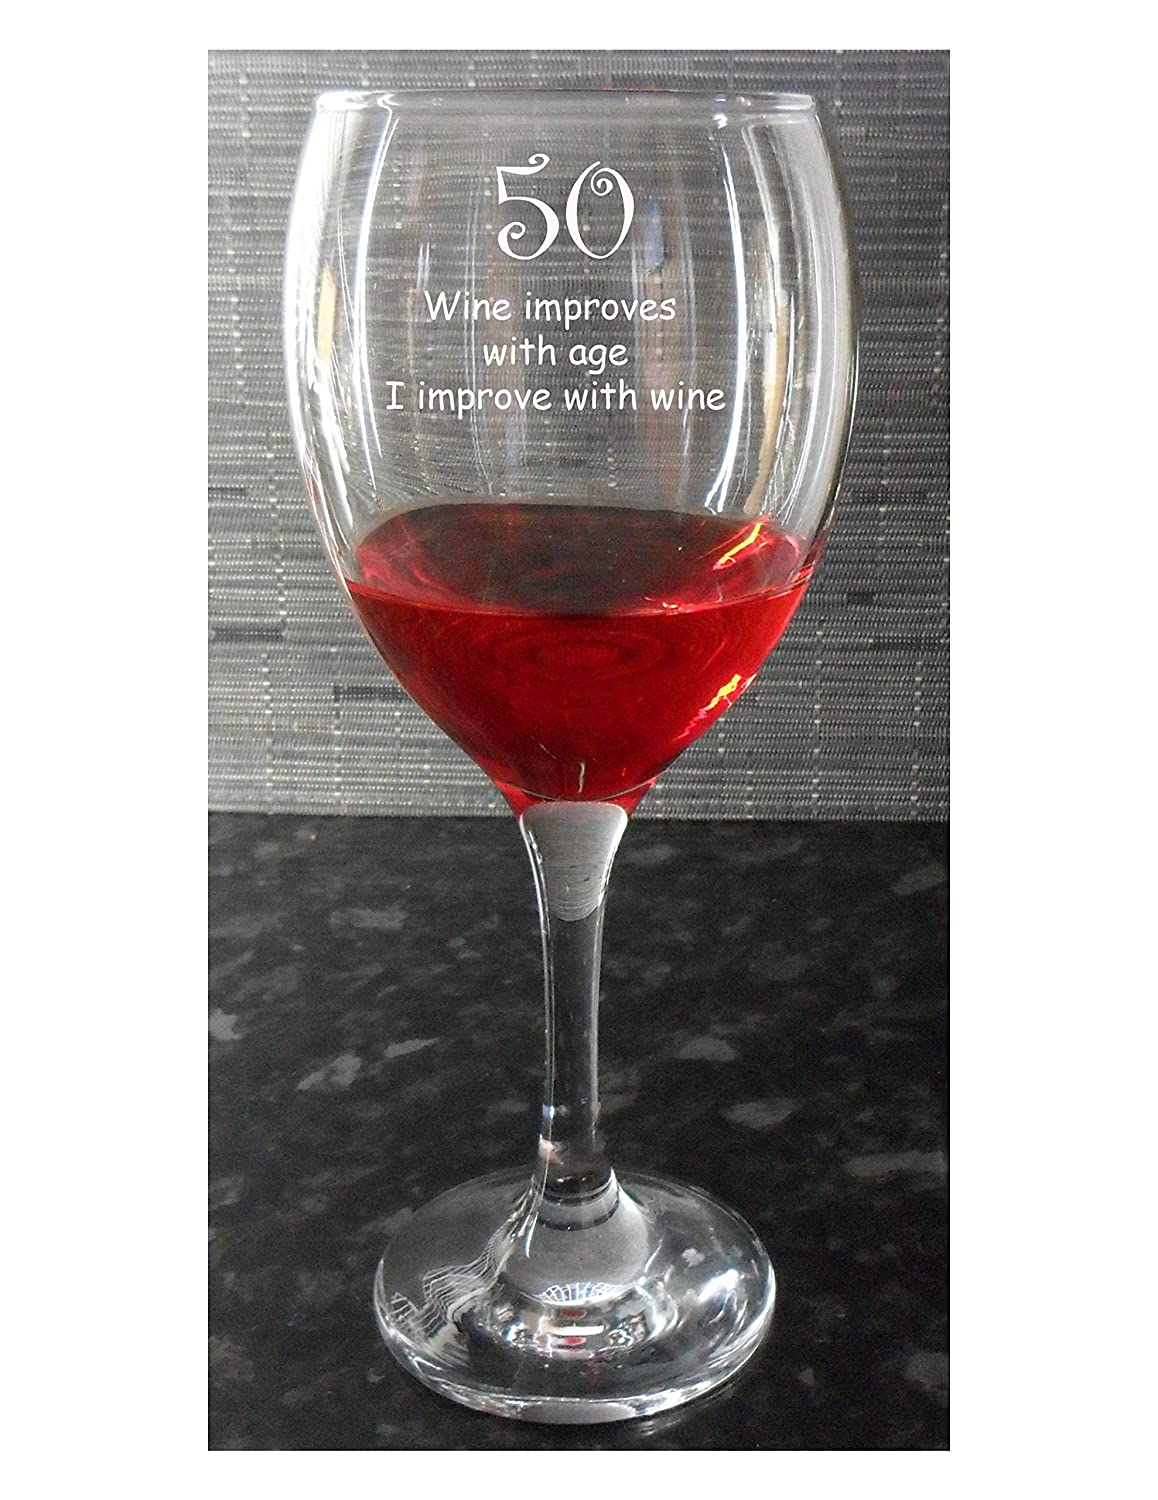 Funny 50th Birthday Present Wine Glass, Wine improves with age, I improve with wine JTS- Designs